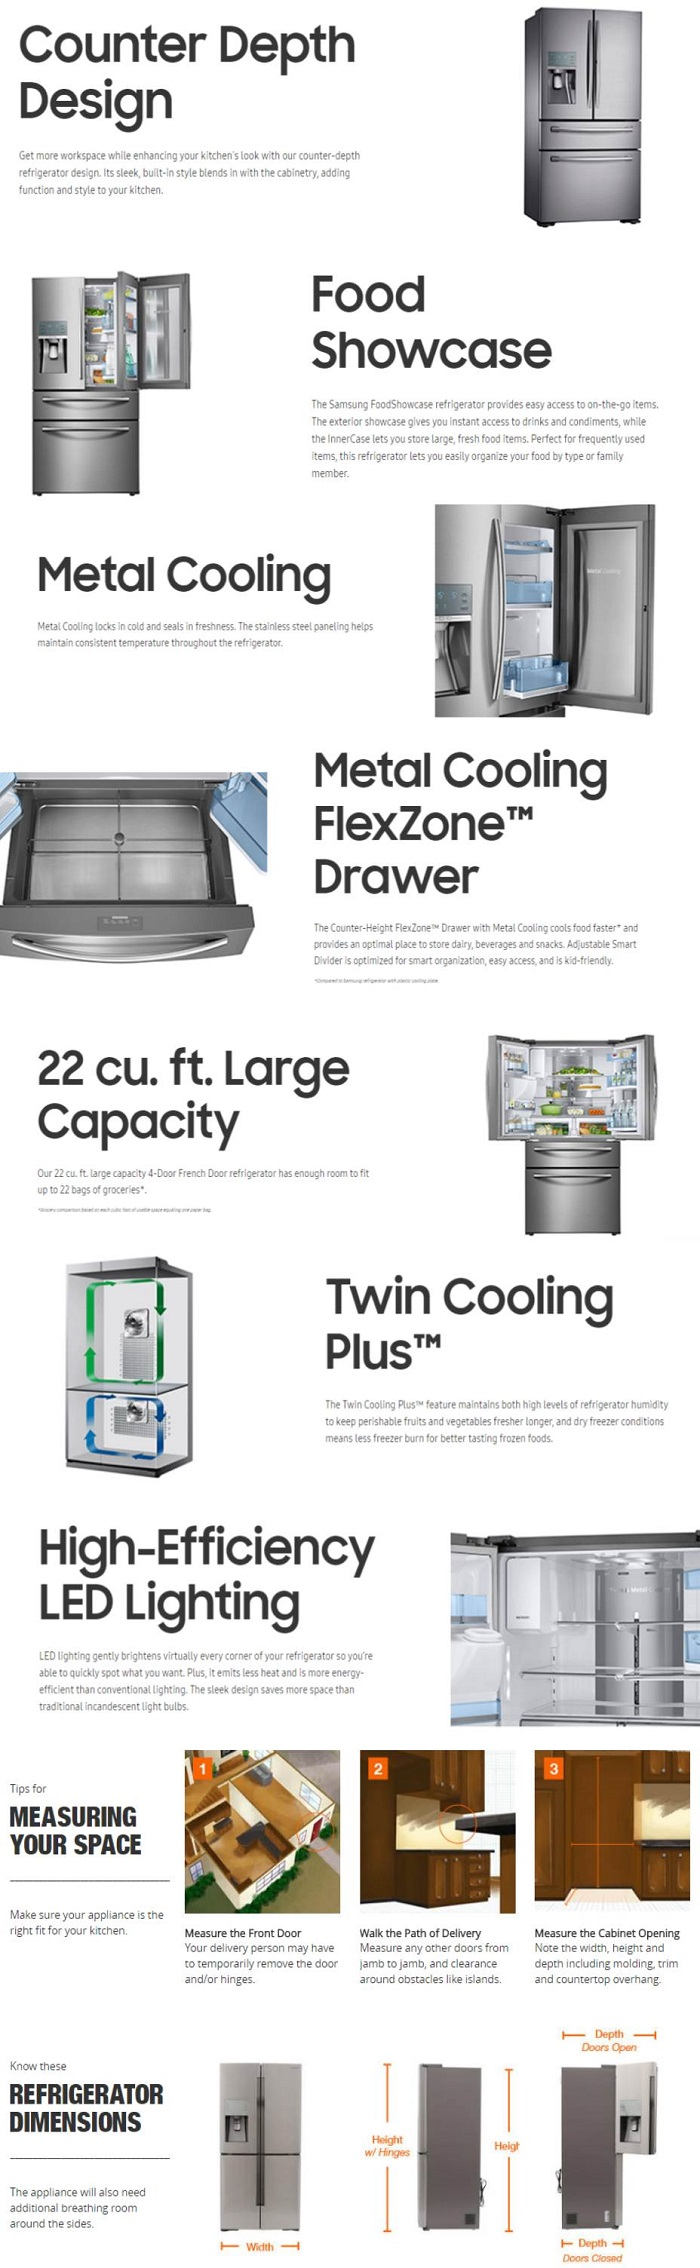 Counter depth refrigerators home depot - Click Here For More Information On Electronic Recycling Programs